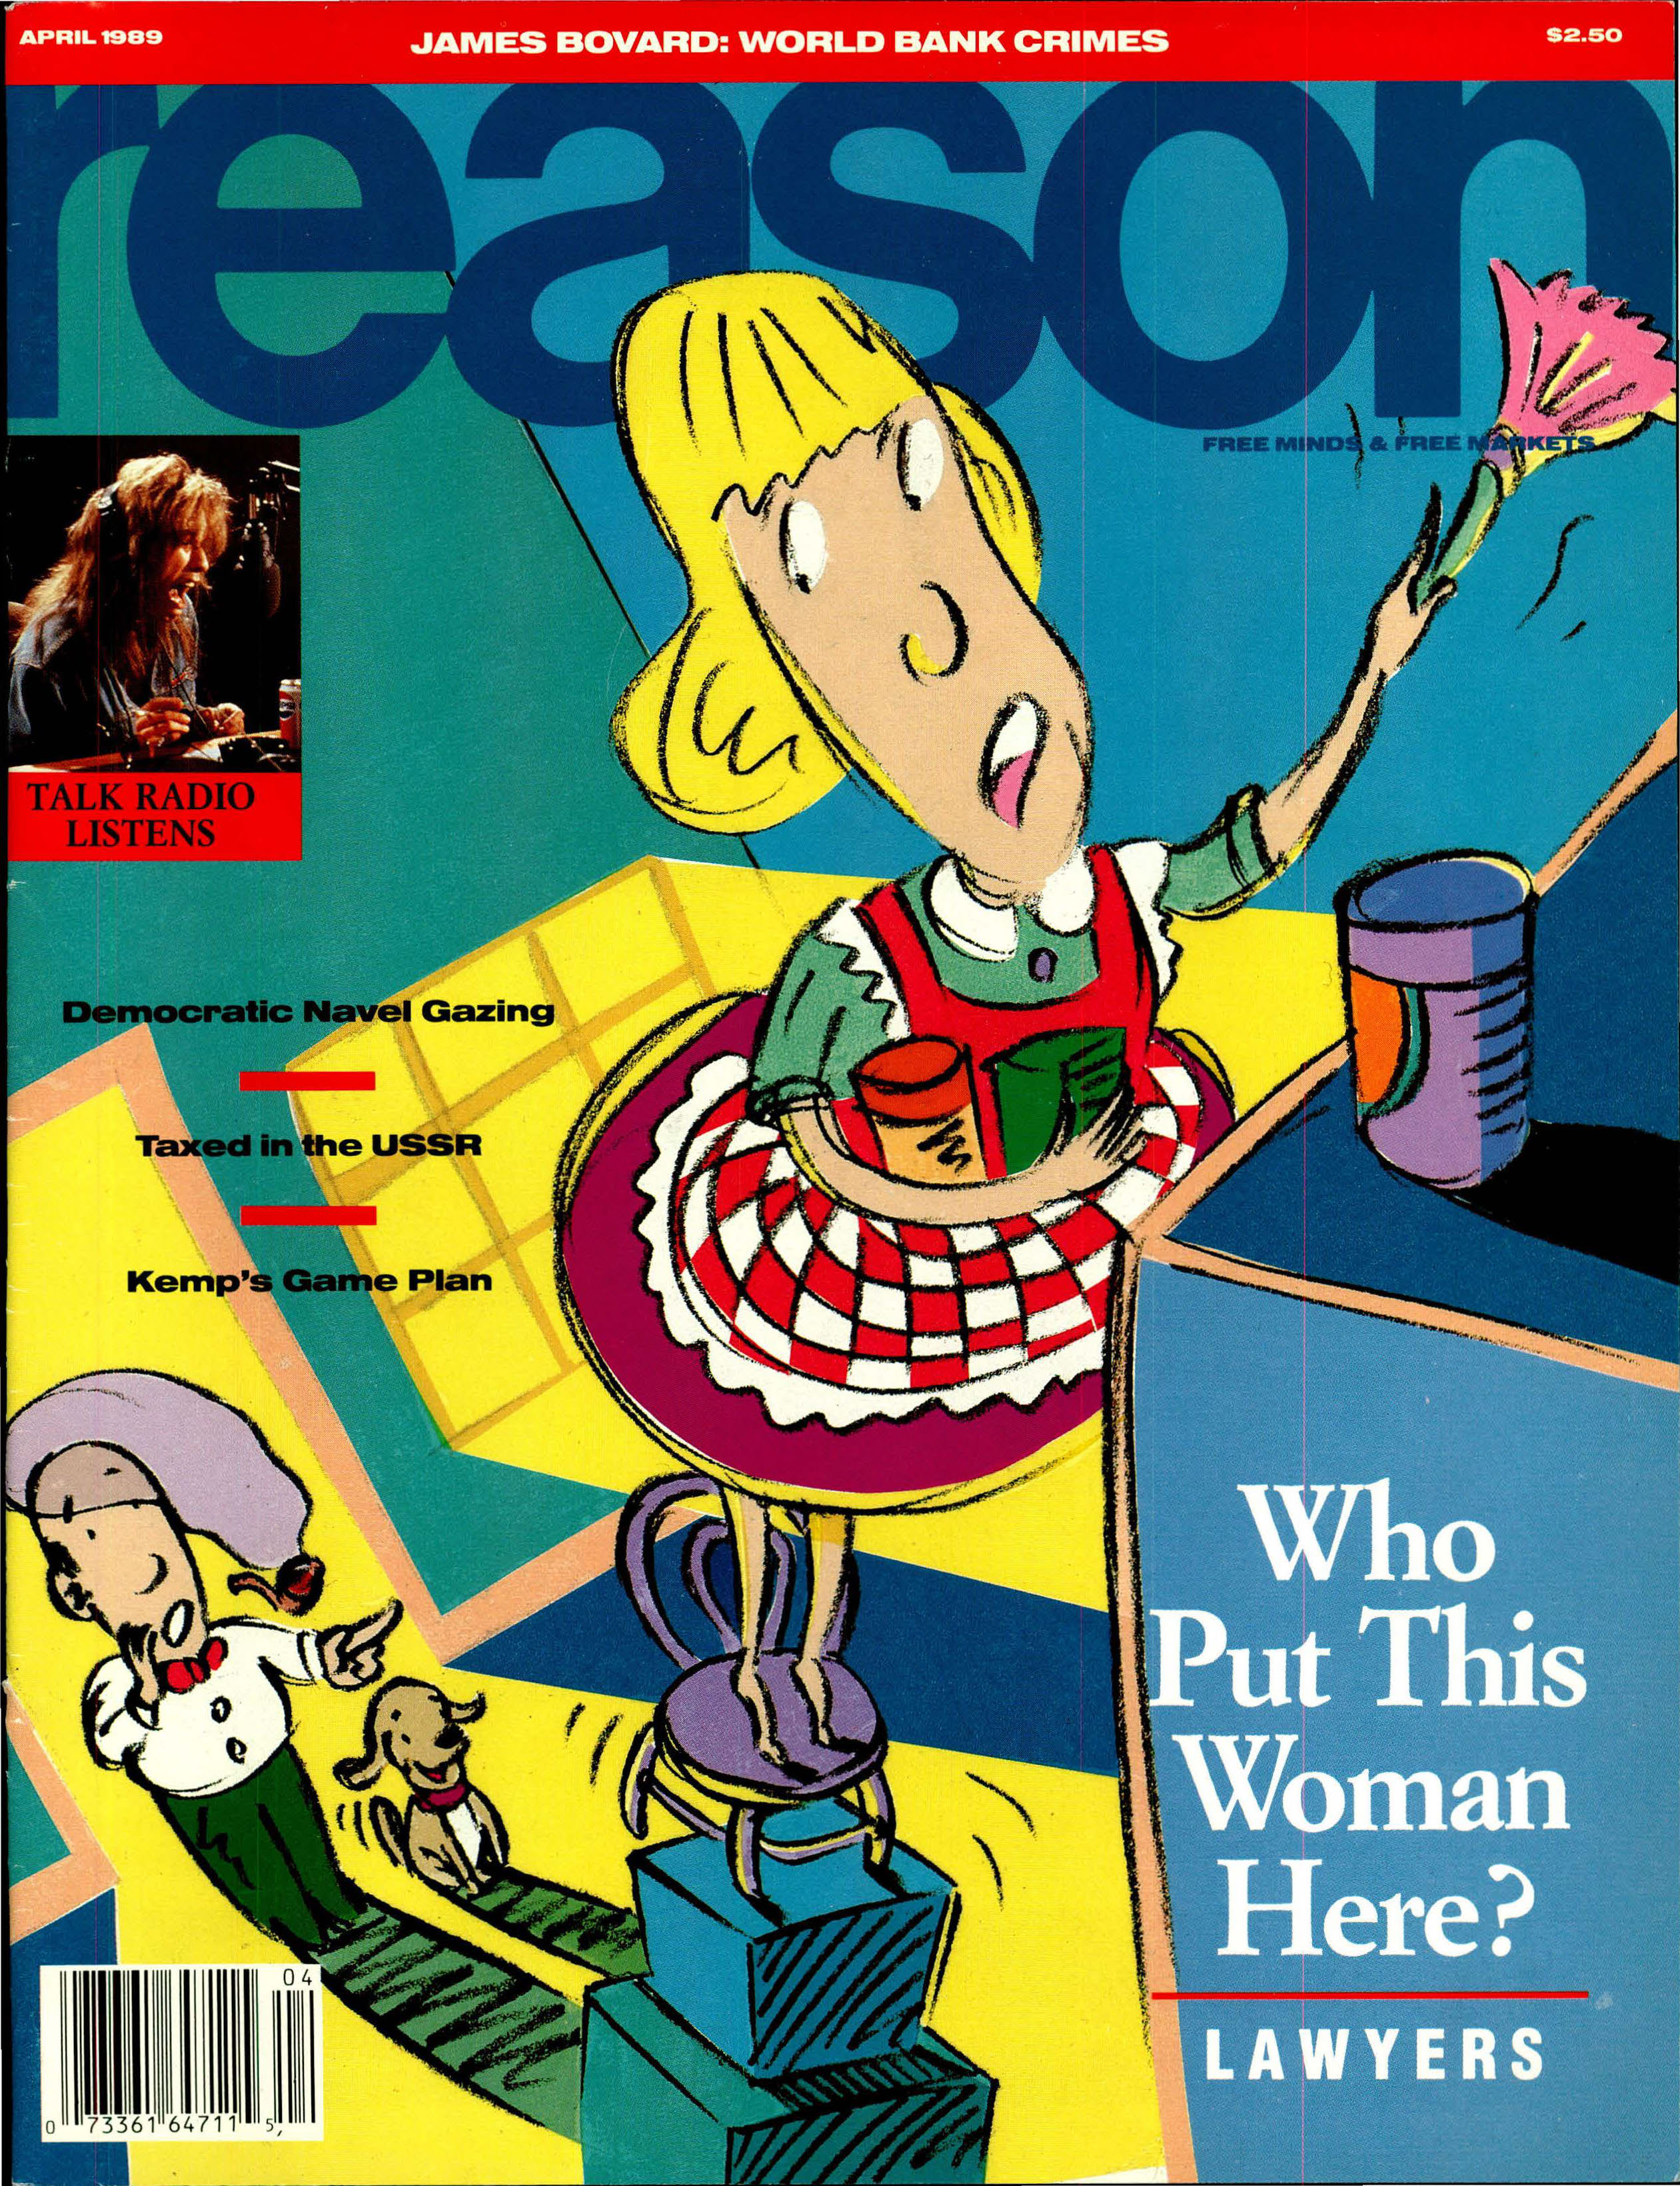 Reason Magazine, April 1989 cover image